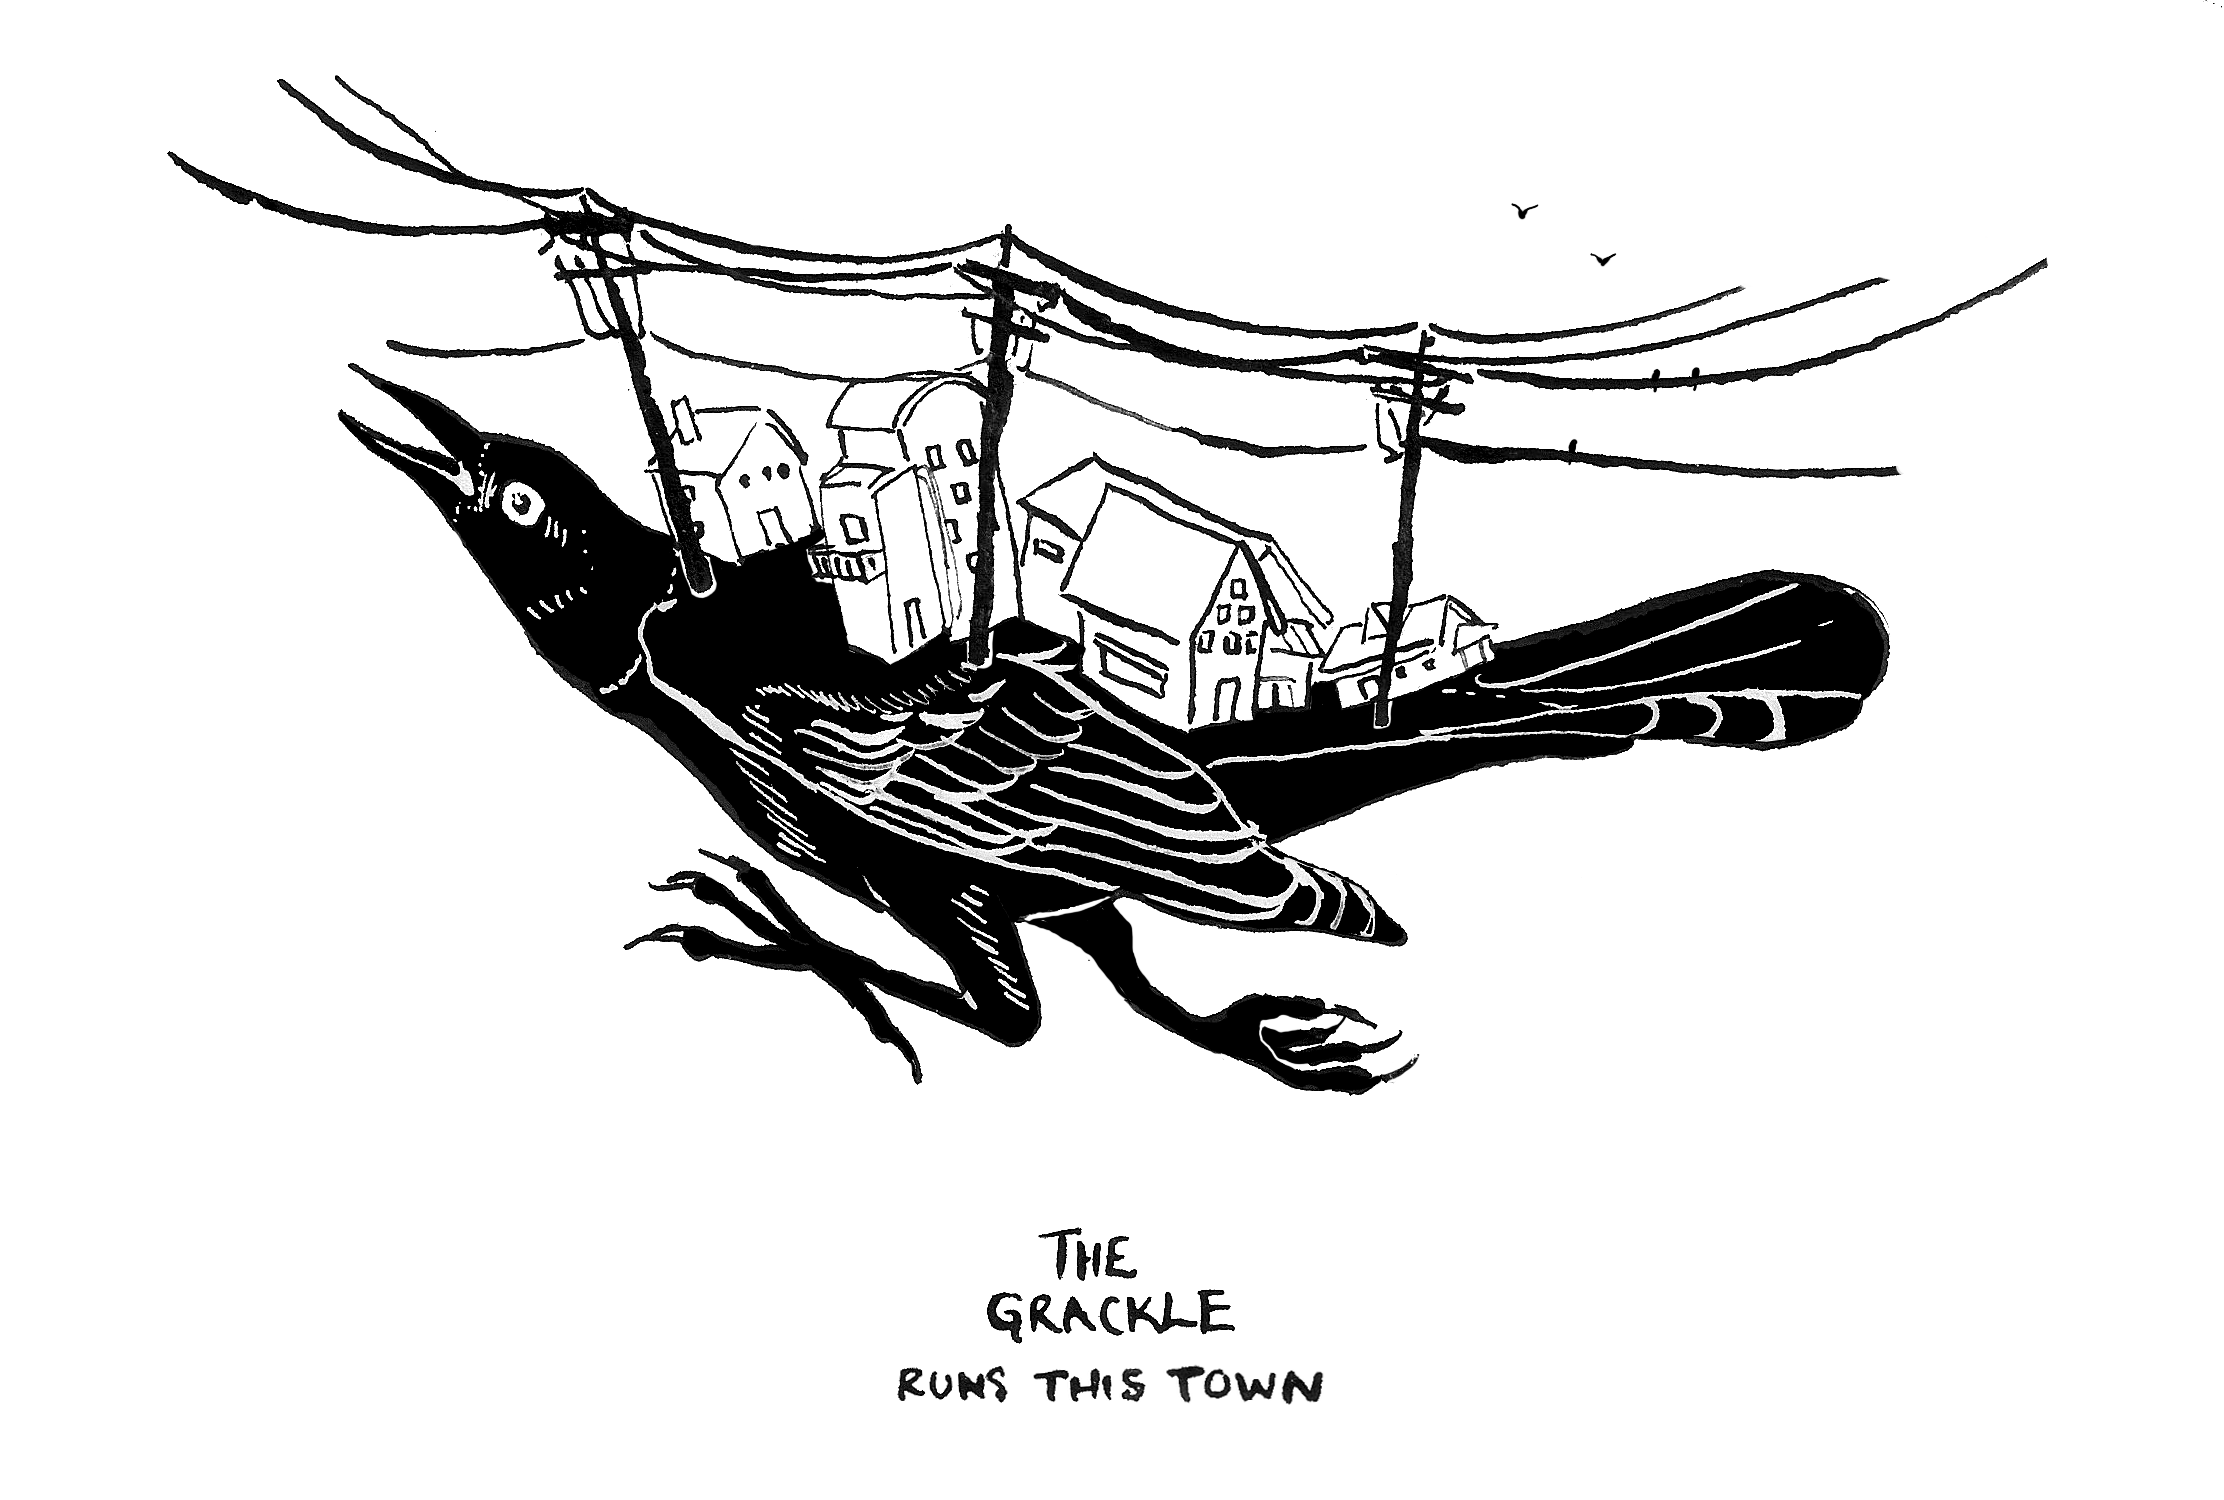 Eva - The Grackle Runs This Town - nonformat